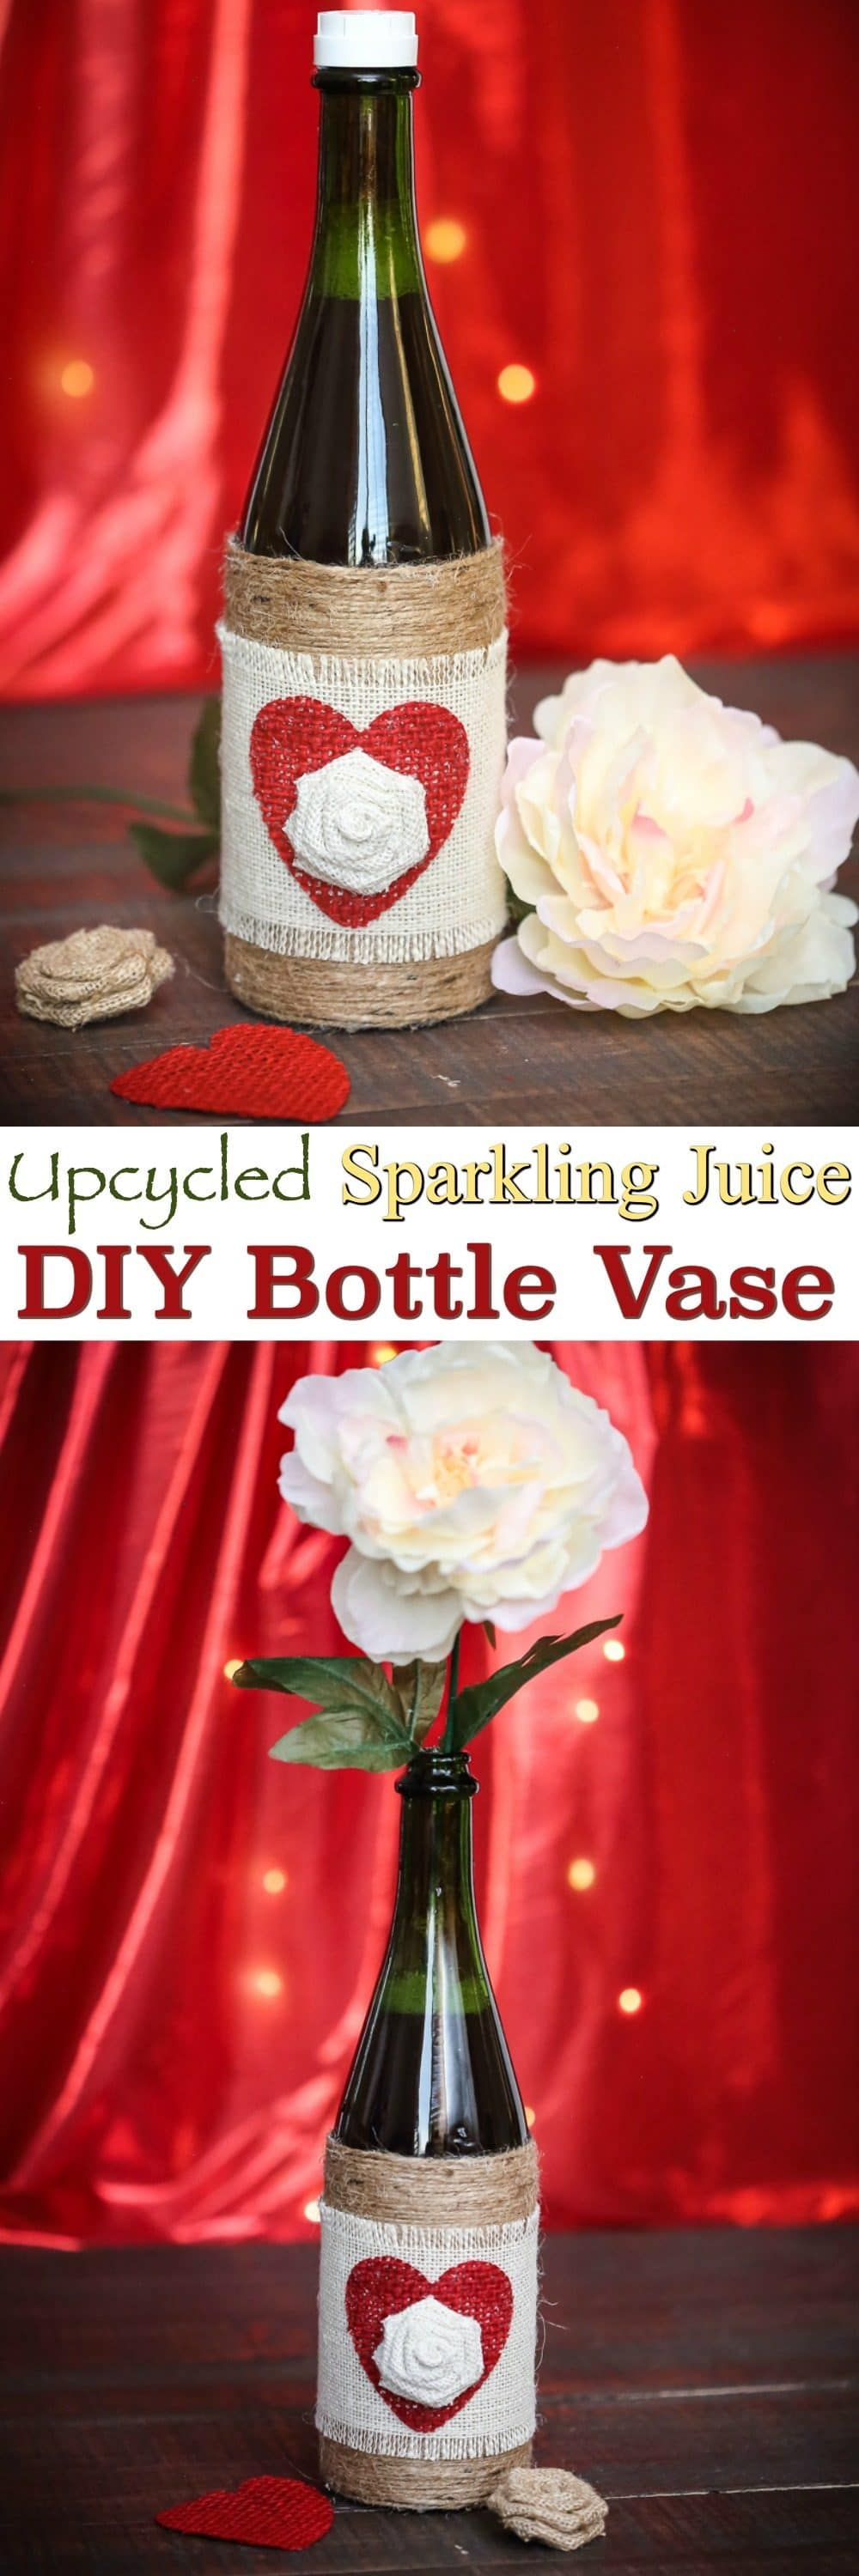 Try a DIY Sparkling Juice Bottle Vase: these upcycled bottles make excellent Valentine's Day gifts for friends, significant other or even a Teacher! Then later it can be used as an adorable vase for silk or fresh cut flowers!